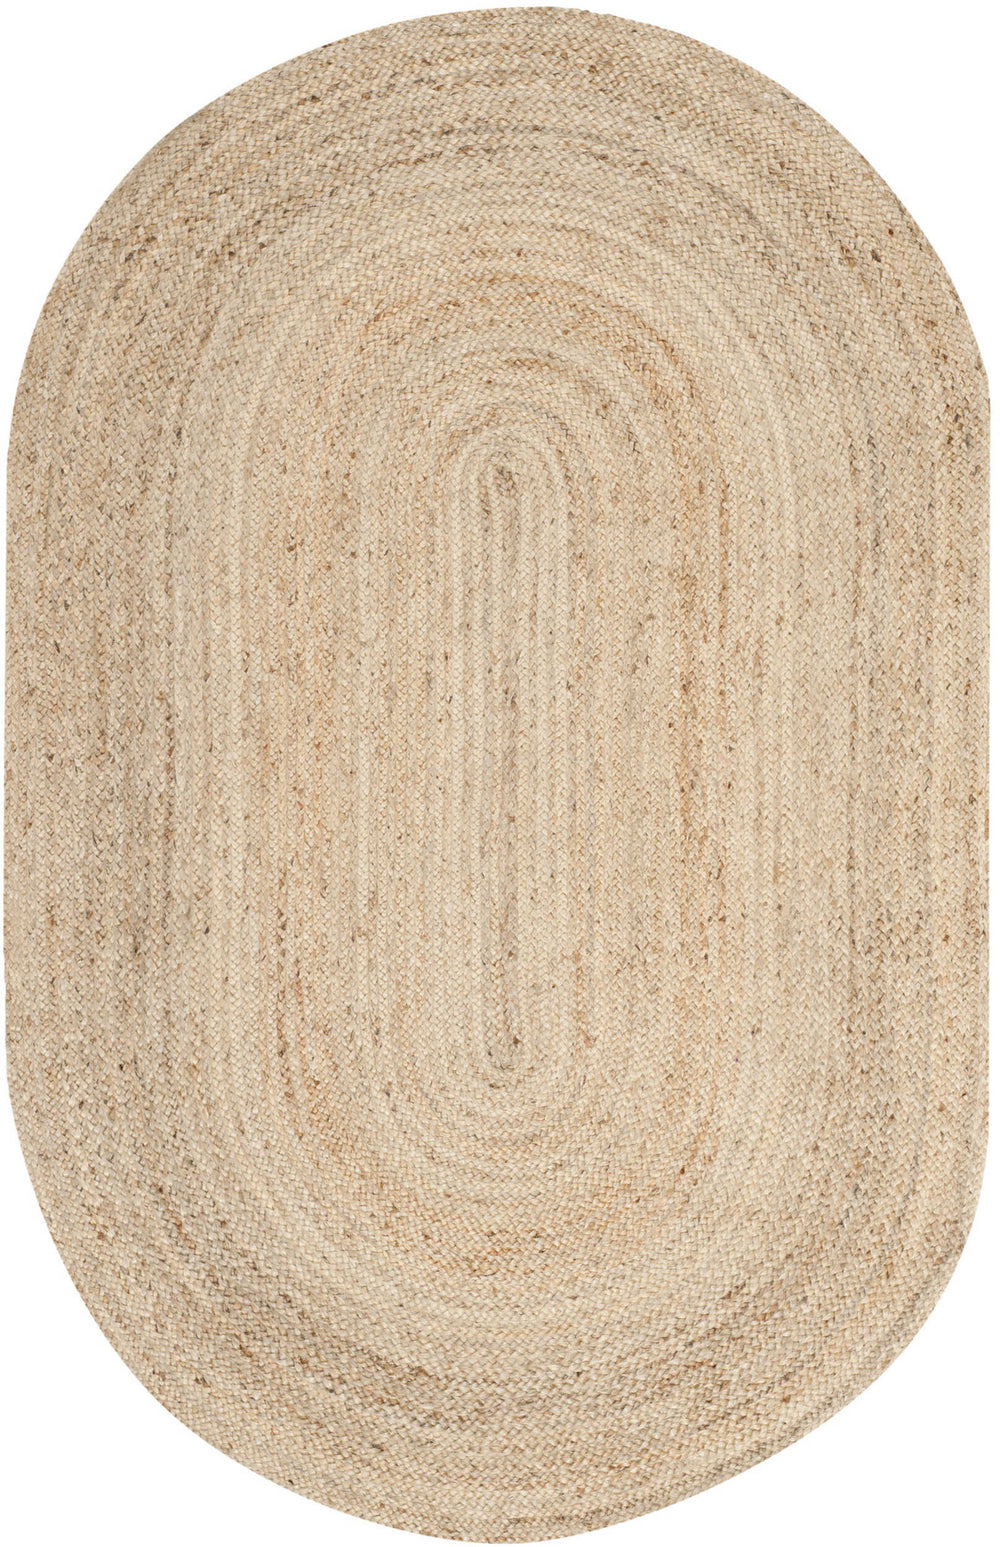 Safavieh Cape Cod CAP252 Area Rug